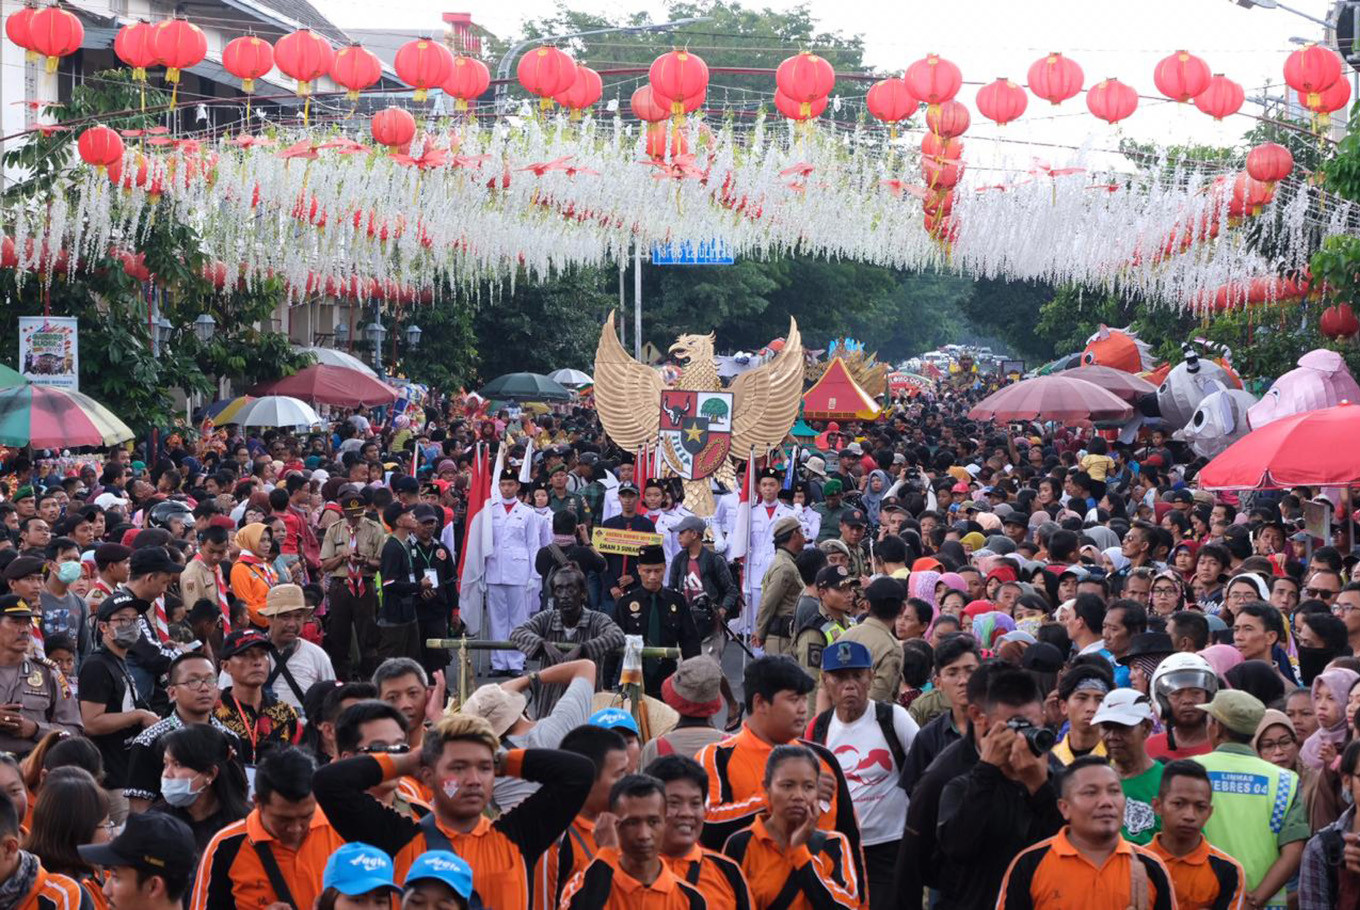 Surakarta gears up for Imlek with Grebeg Sudiro parade